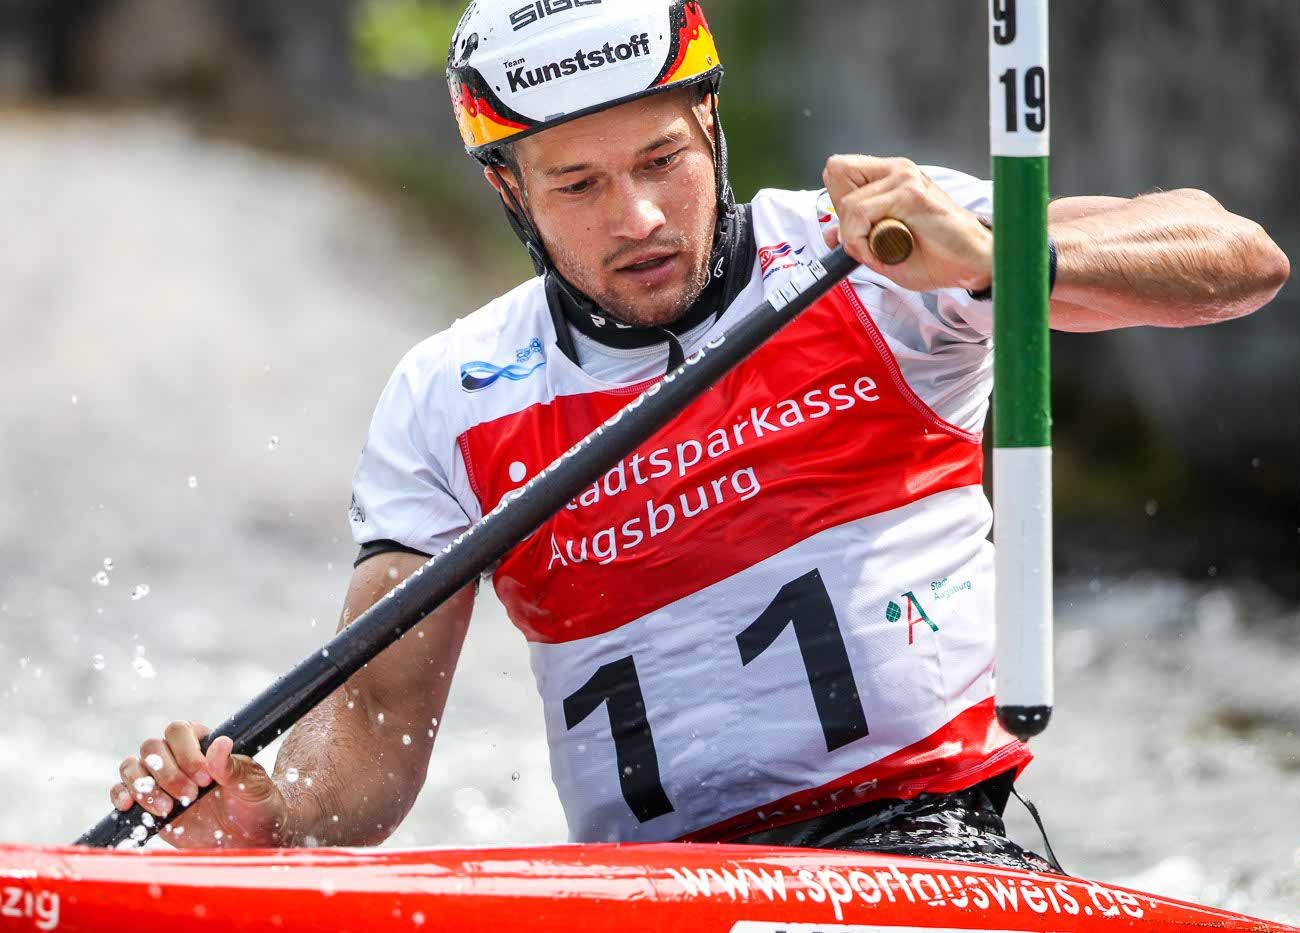 Markkleeberg is ready for a big show this weekend | ICF - Planet Canoe